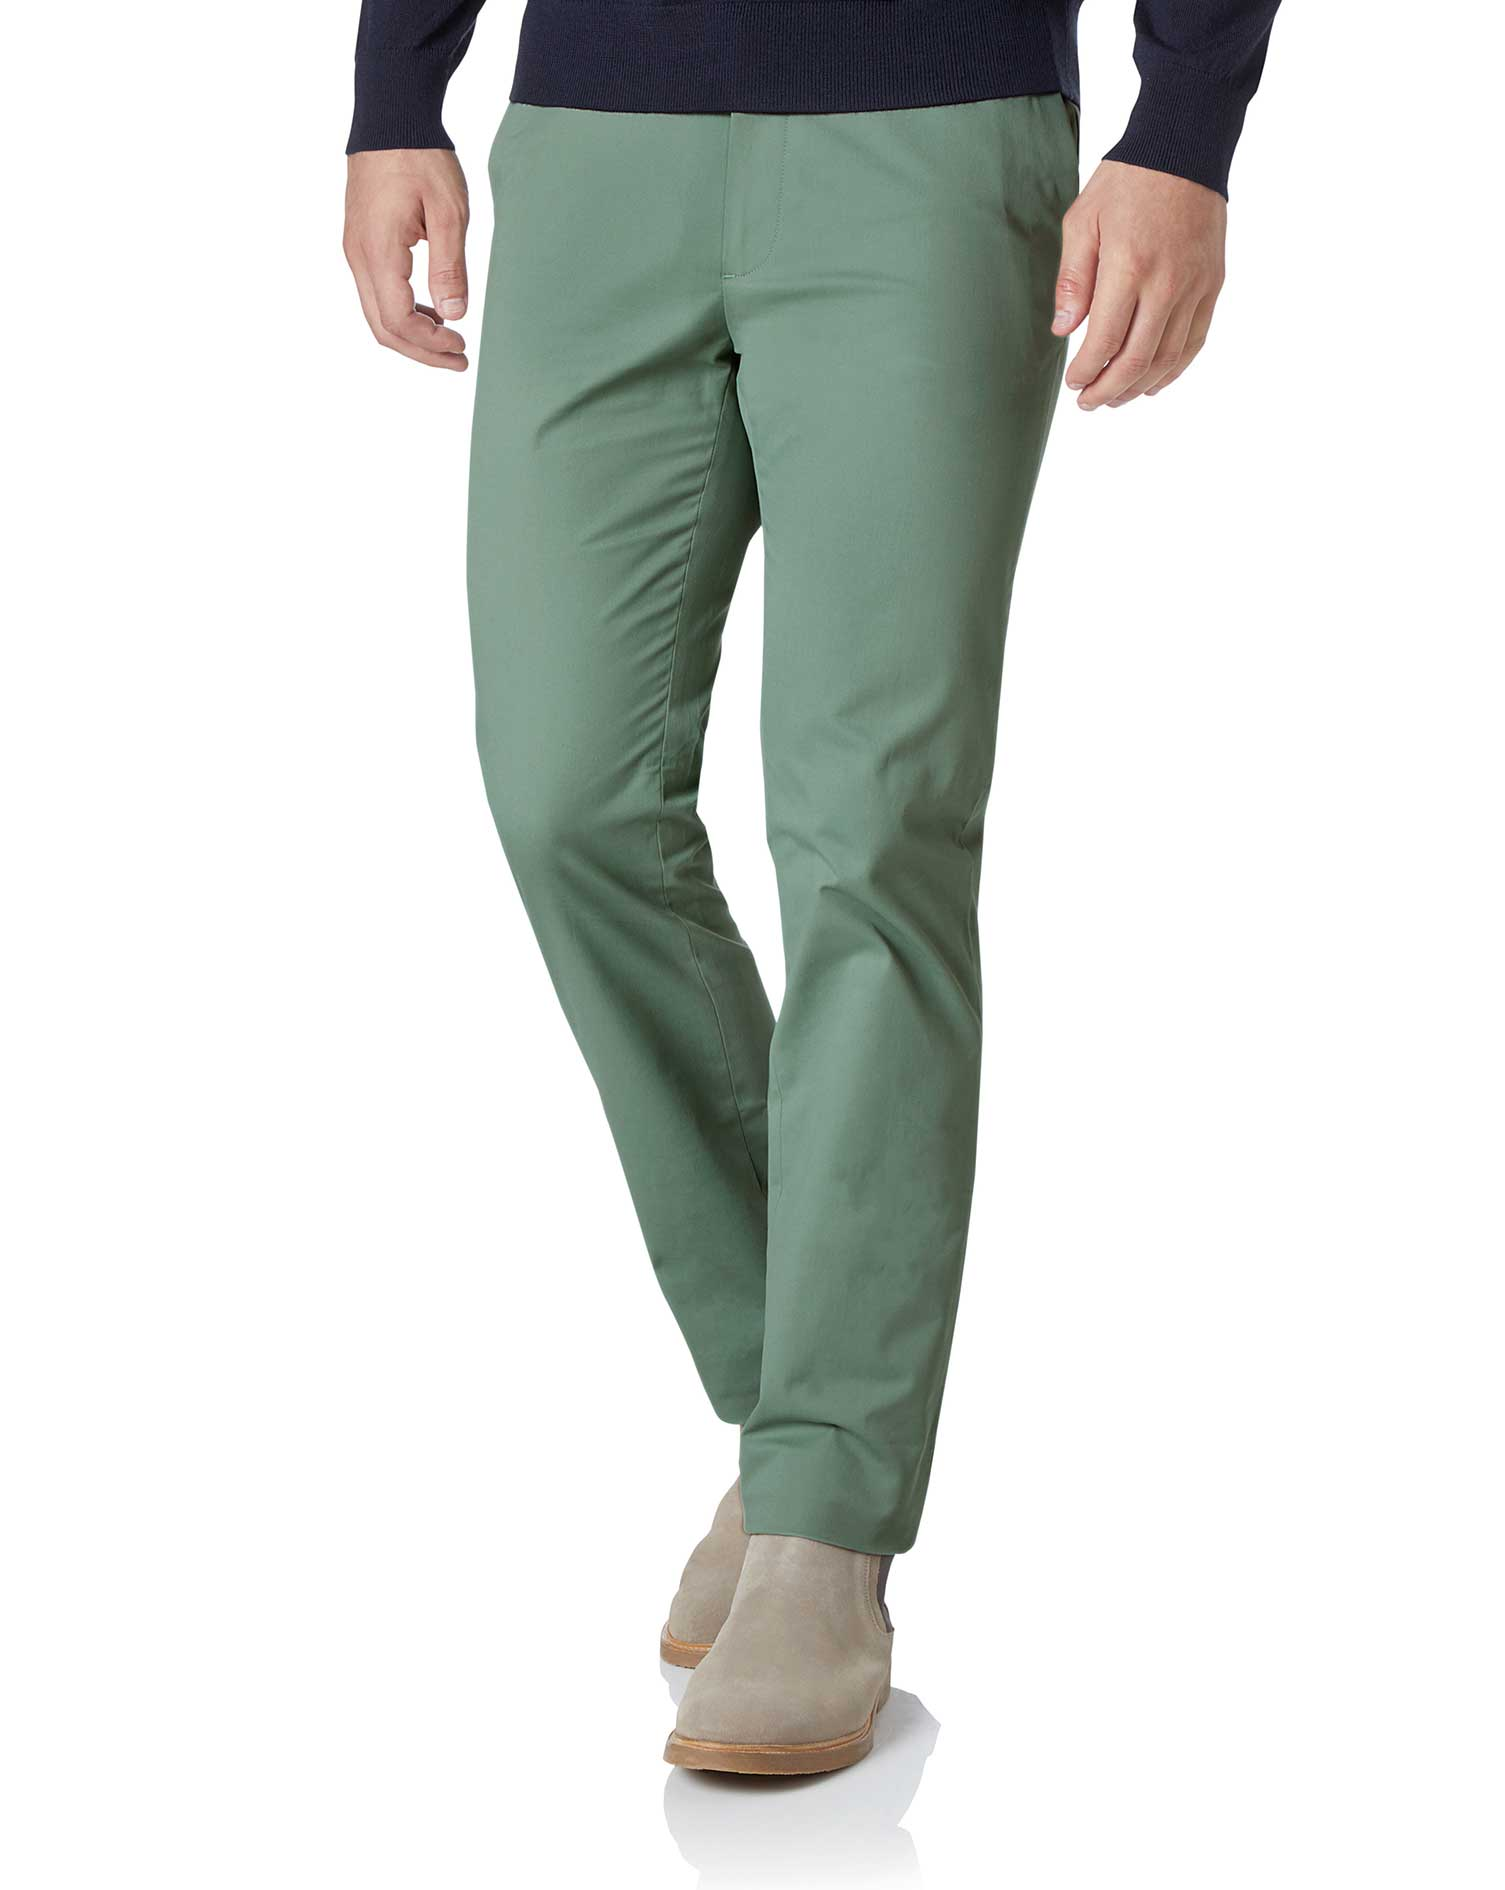 Light Green Extra Slim Fit Stretch Cotton Chino Trousers Size W32 L32 by Charles Tyrwhitt